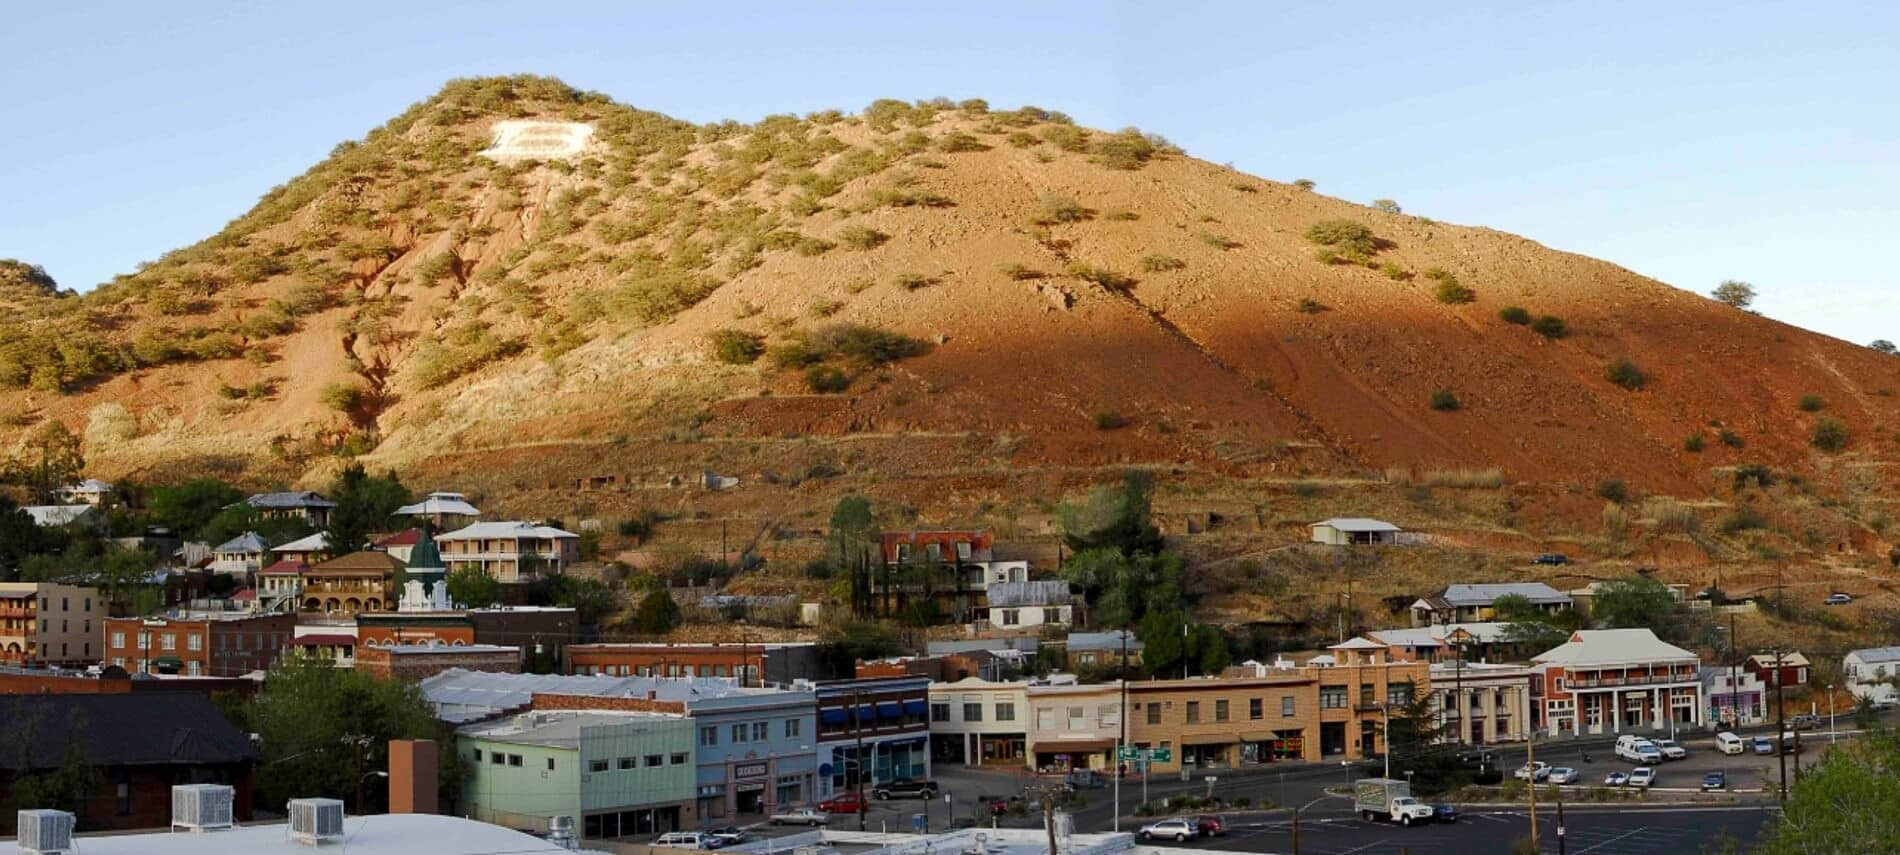 Single barren mountain with blue skies above and buildings of small town in valley below